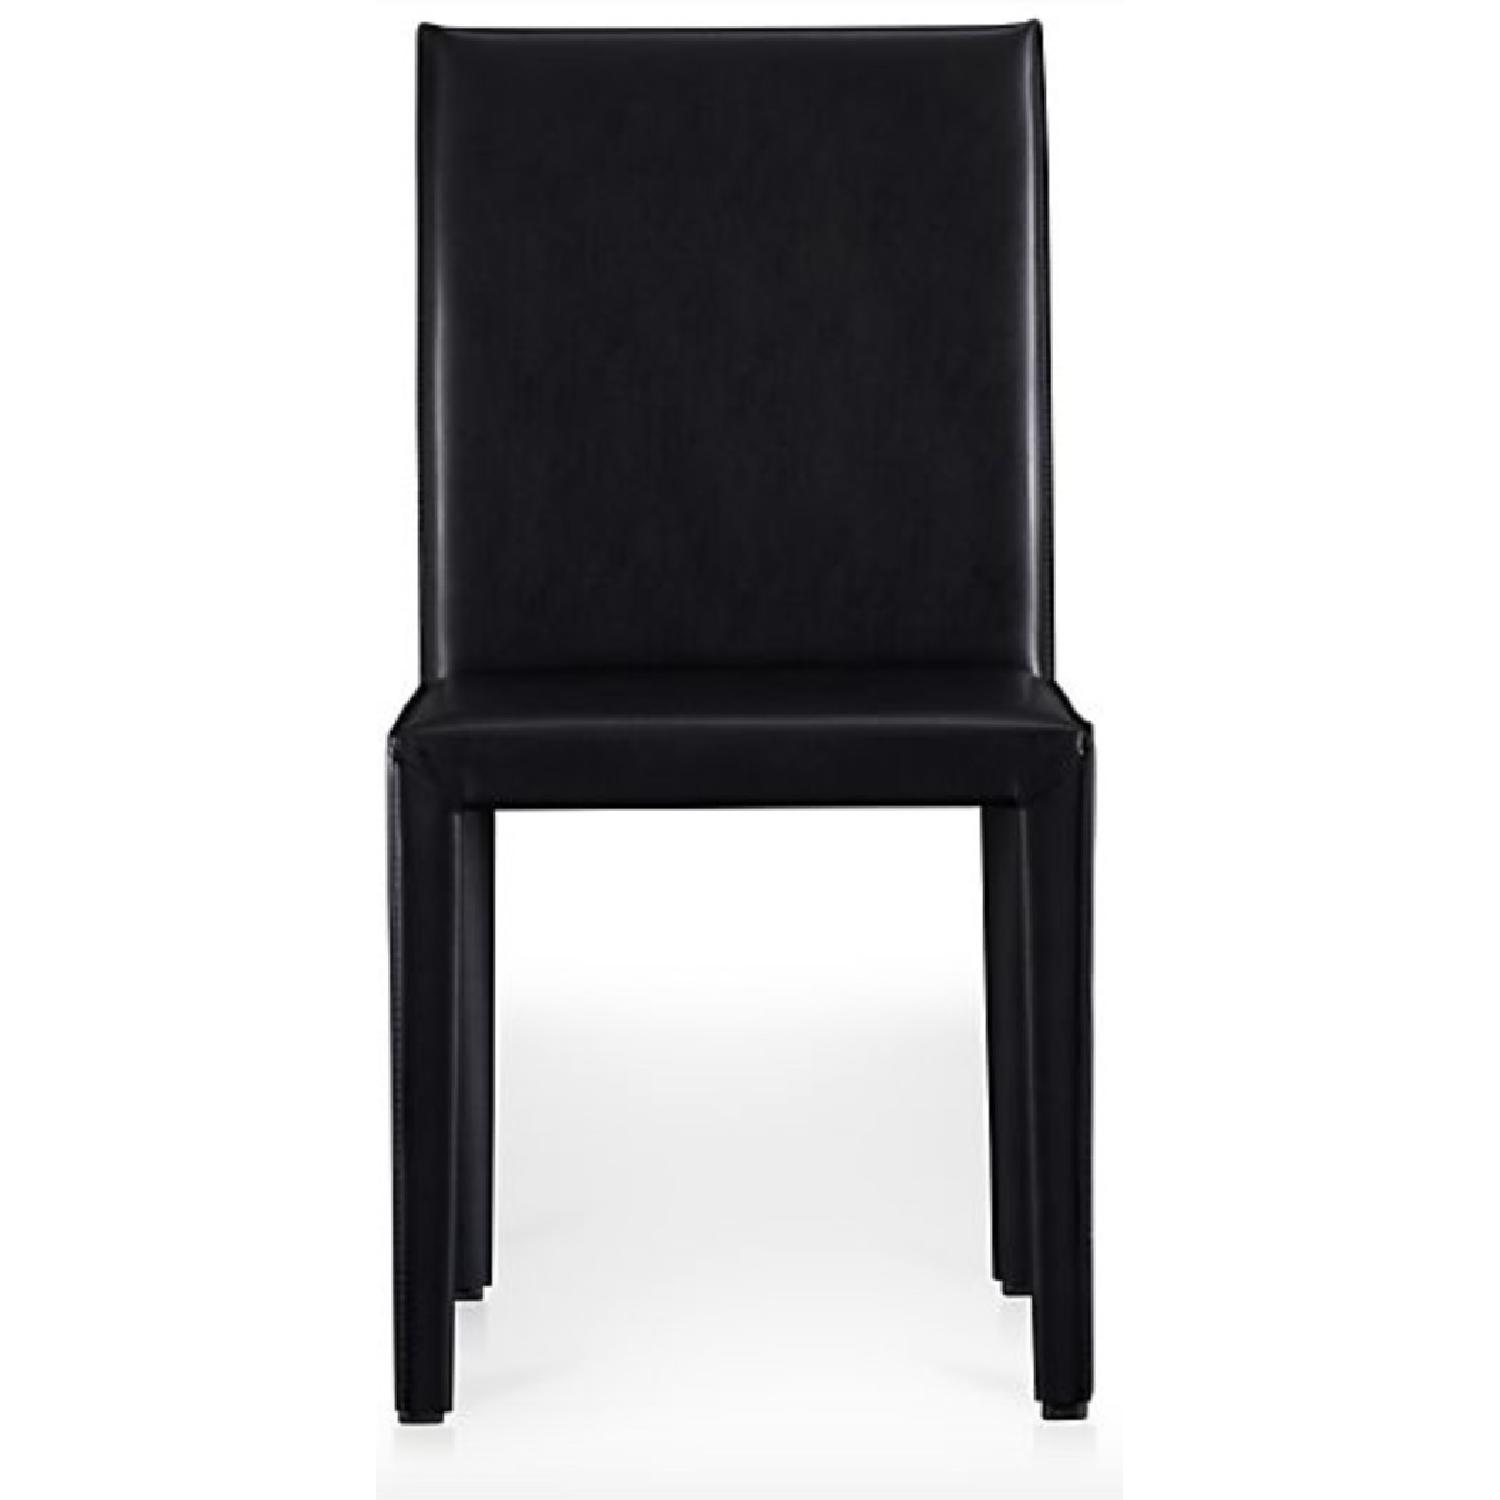 Crate & Barrel Folio Bonded Leather Dining Chair - image-1